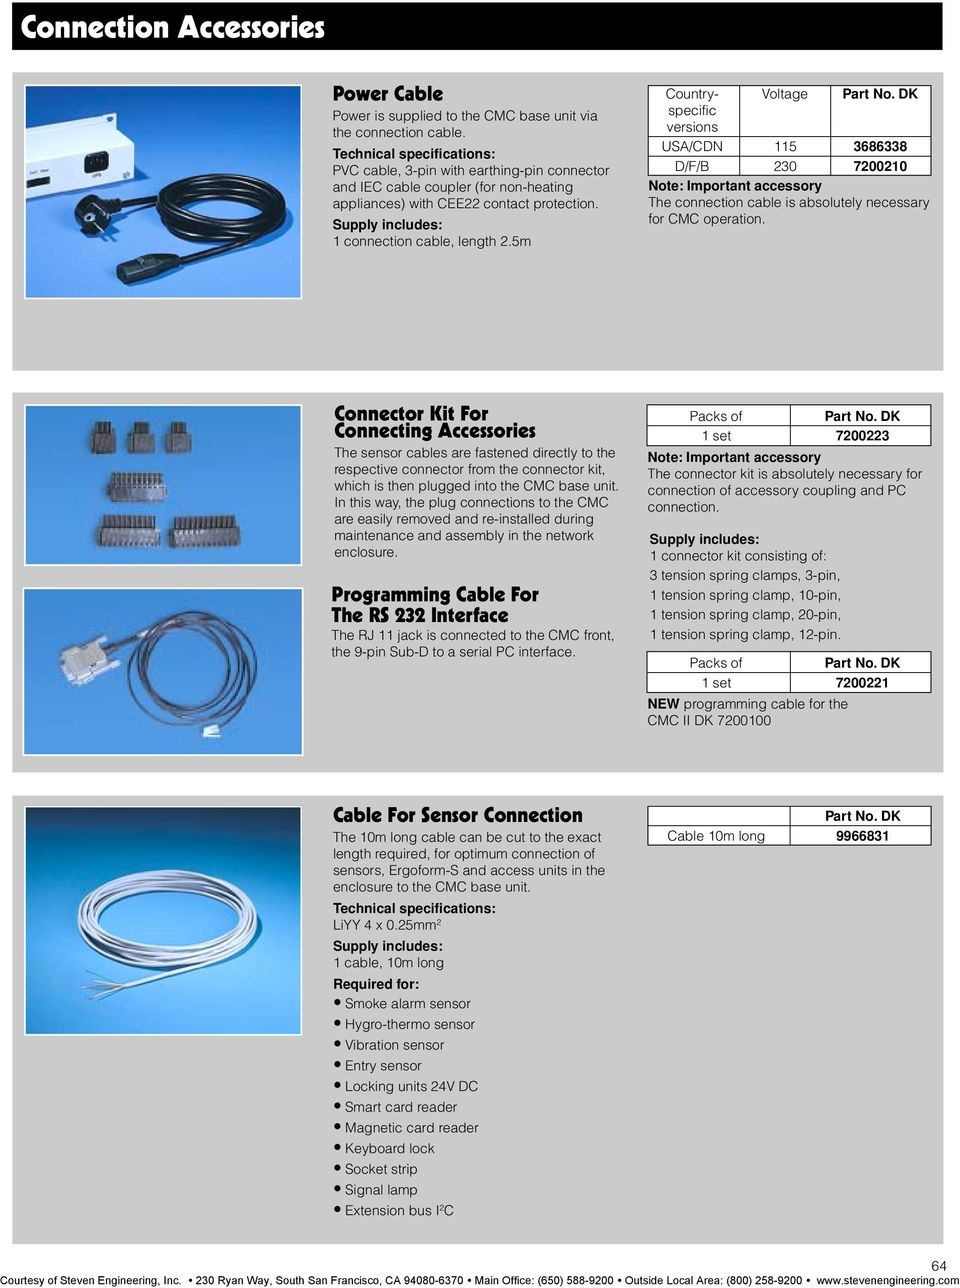 5m Country- Voltage specific versions USA/CDN 115 3686338 D/F/B 230 7200210 Note: Important accessory The connection cable is absolutely necessary for CMC operation.